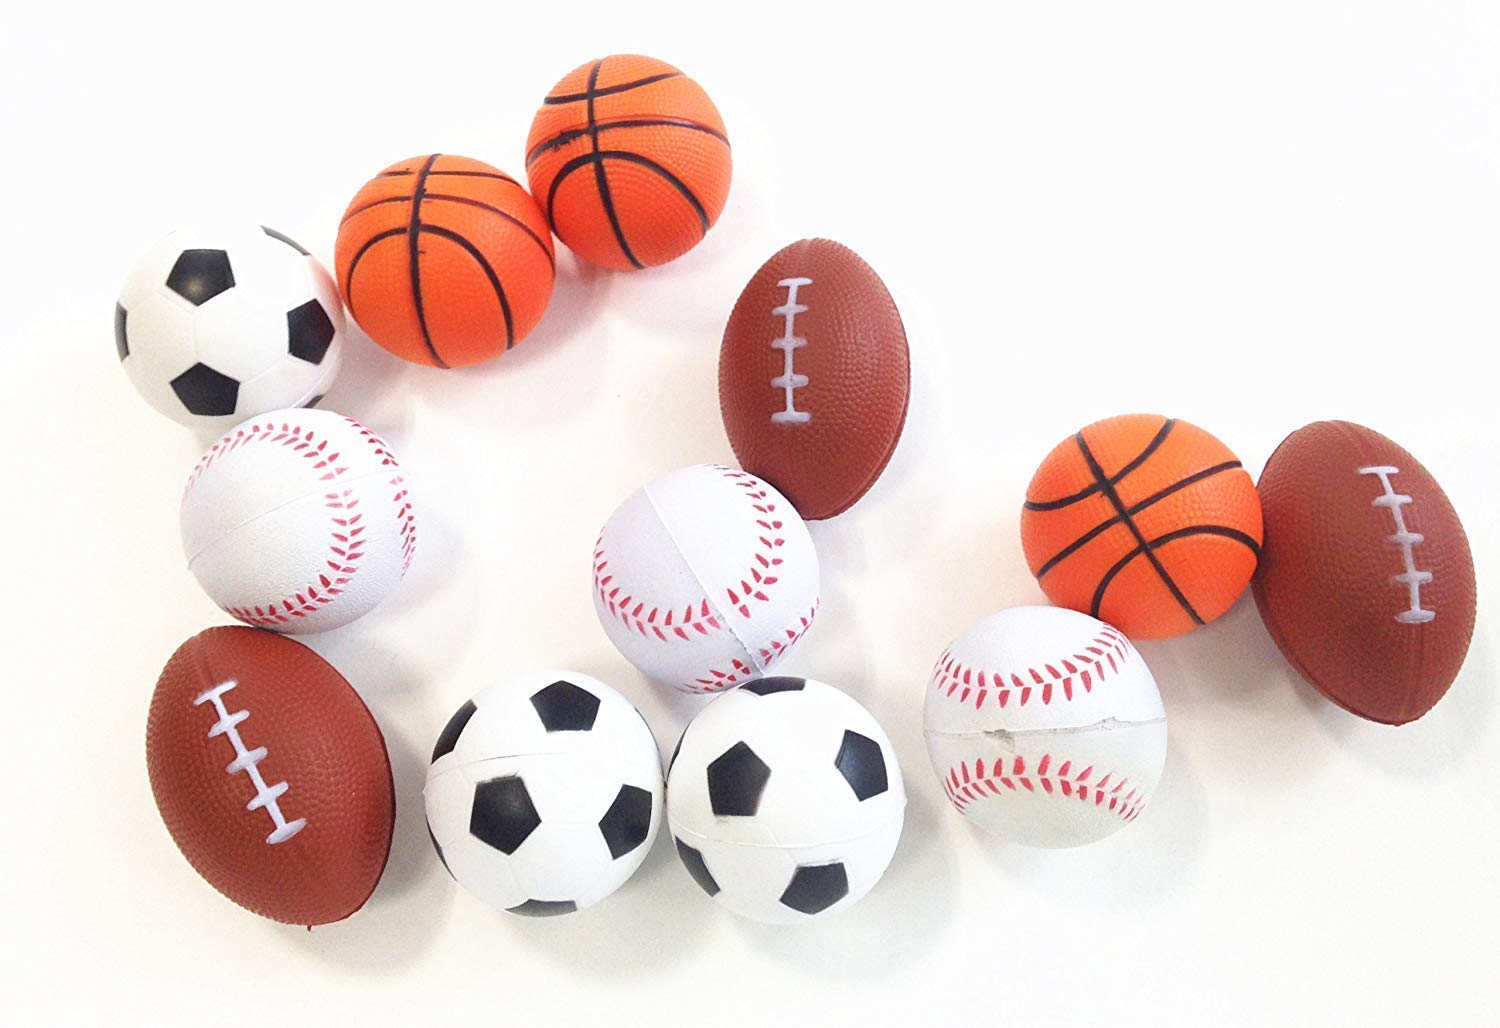 by dazzling toys - D057 Dazzling Toys Relaxable Balls Foam Sports Balls, 12 Pack